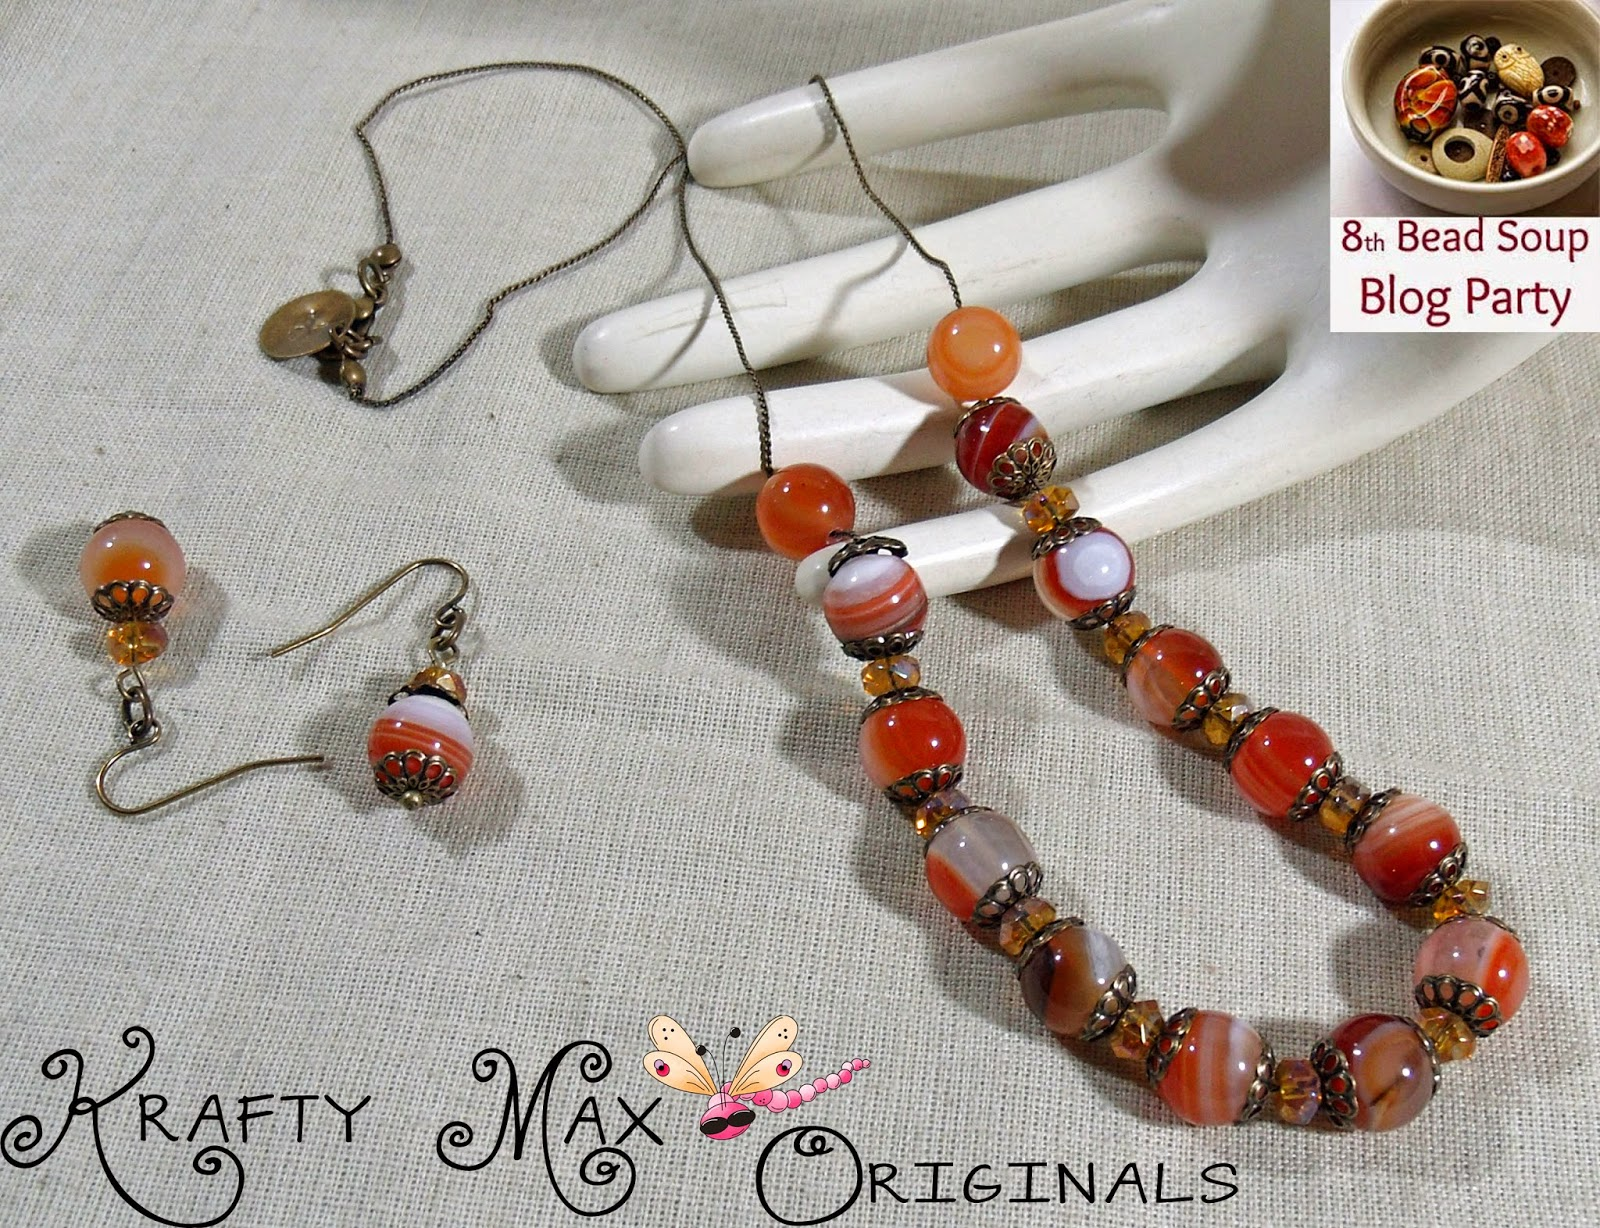 http://www.artfire.com/ext/shop/product_view/KraftyMax/9283209/8th_bead_soup_blog_party_-_glowing_red_agate_neclace_and_earrings/handmade/jewelry/sets/gemstone